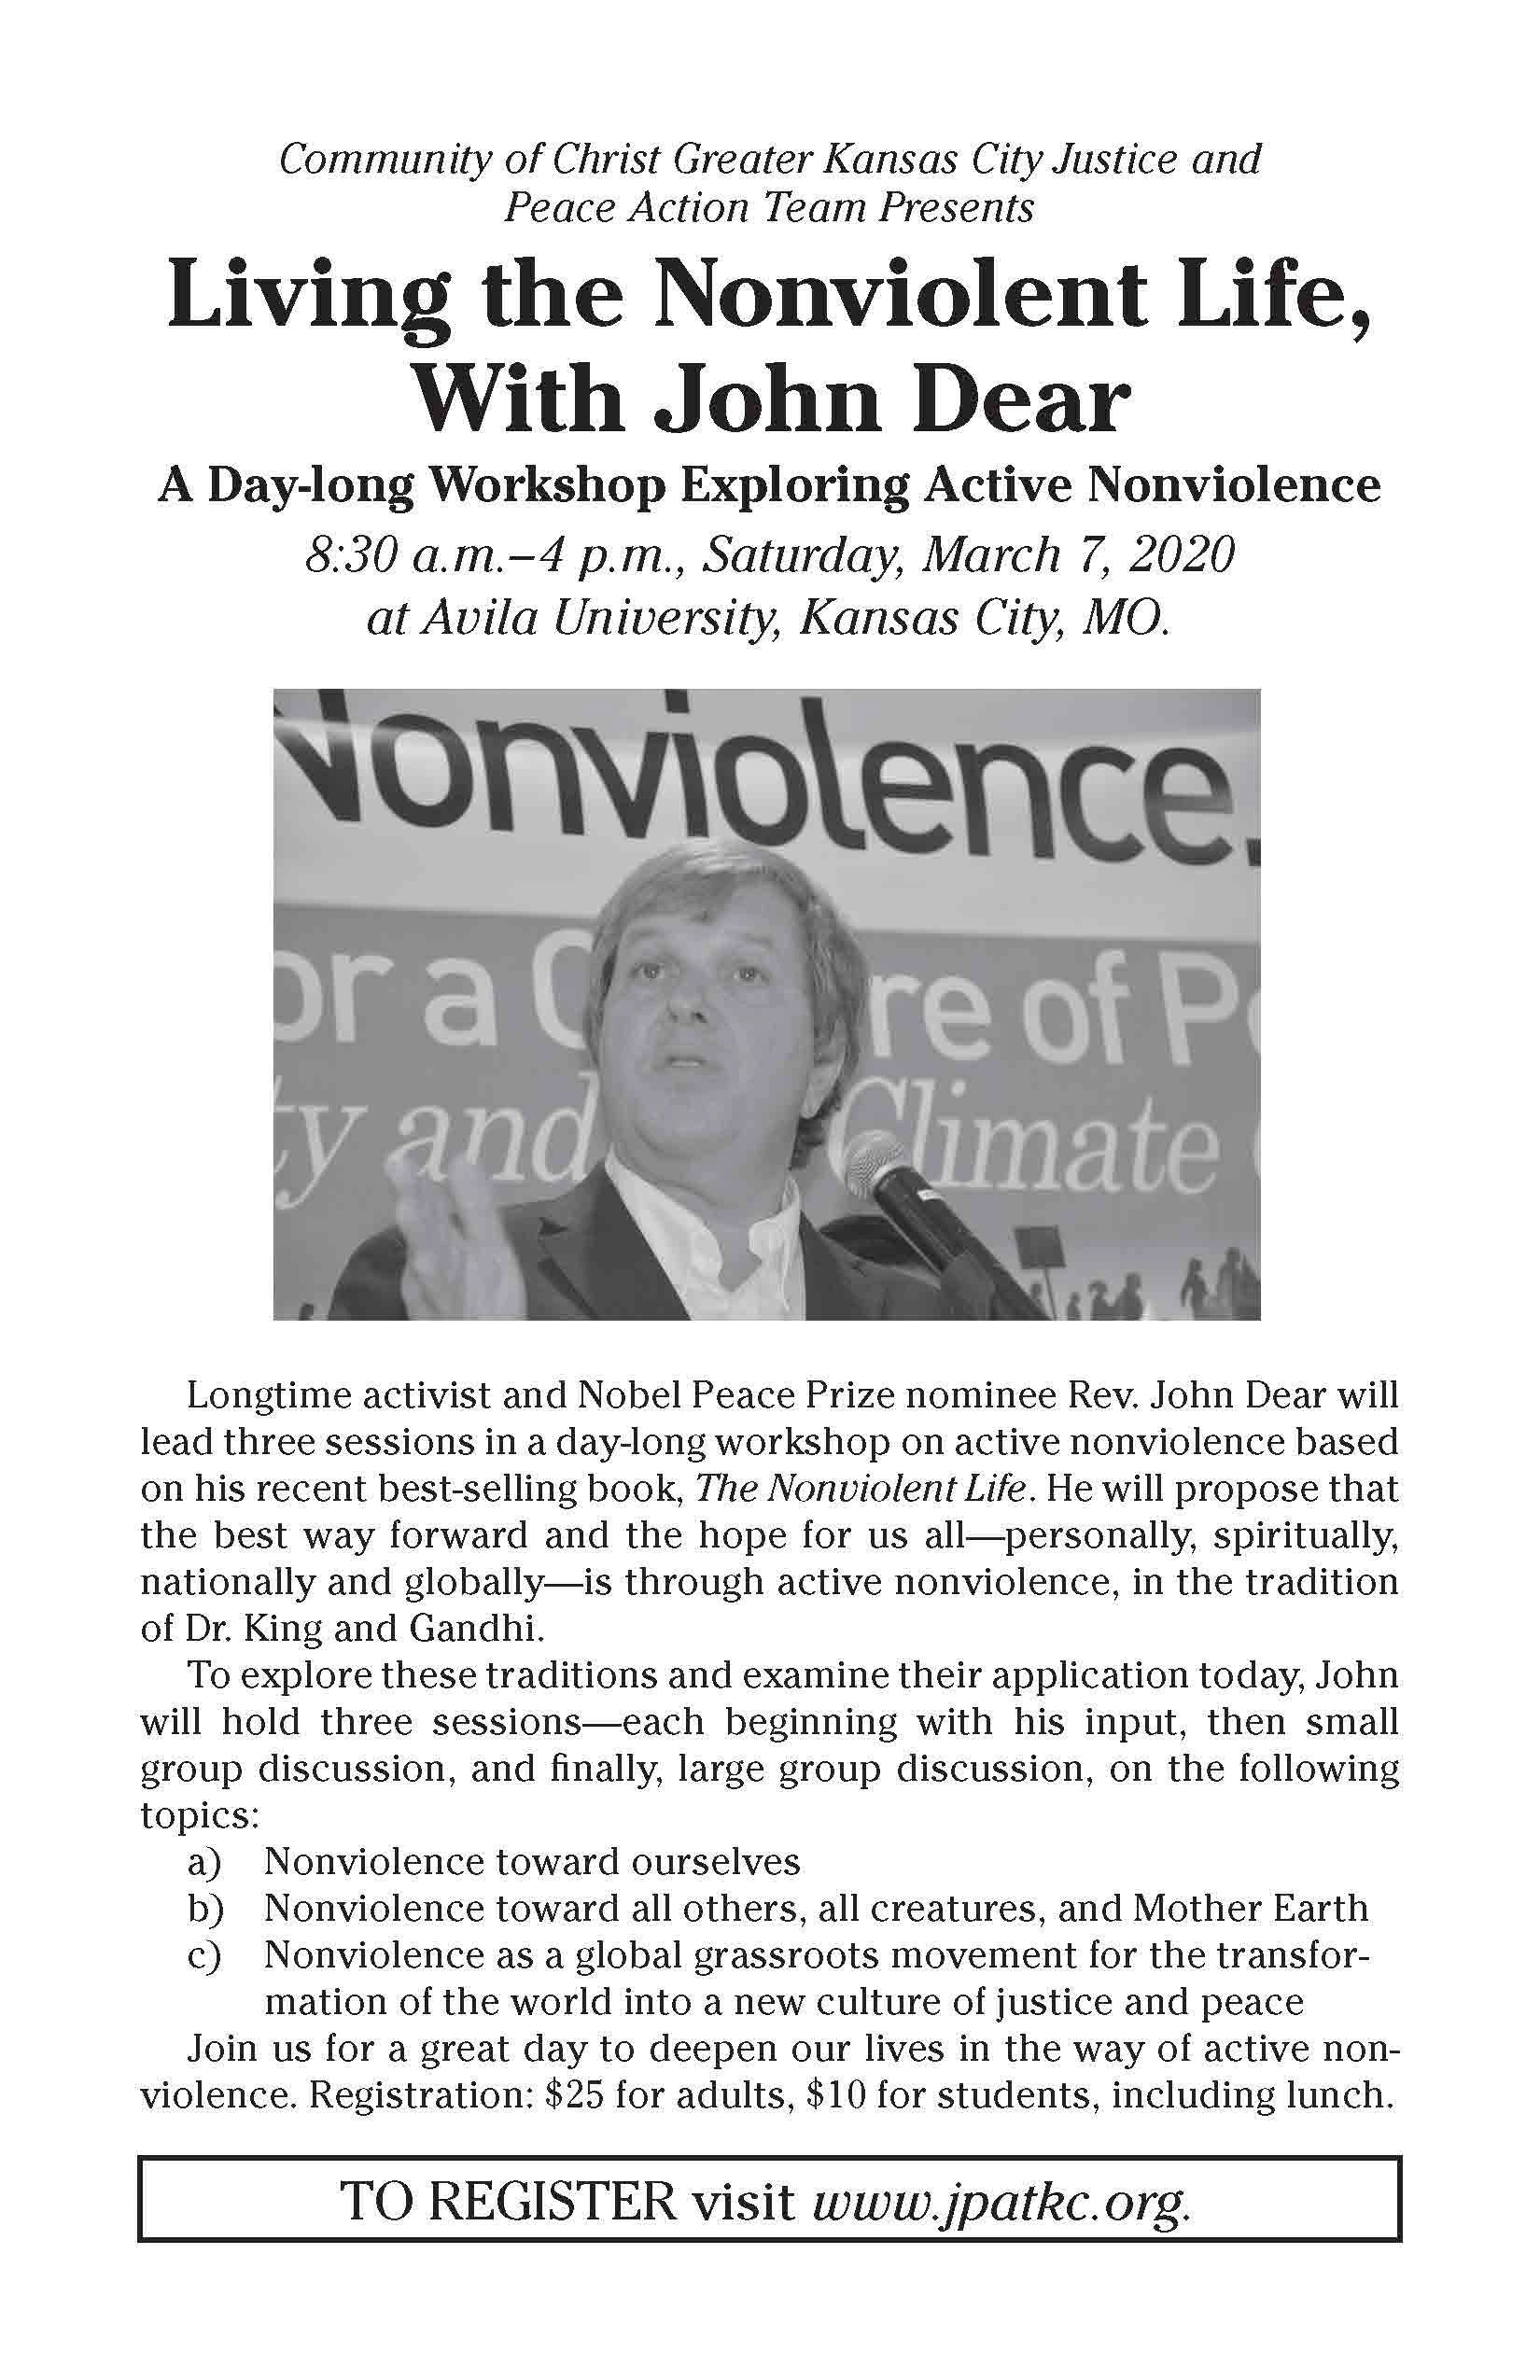 Flyer about John Dear Workshop on Active Nonviolence